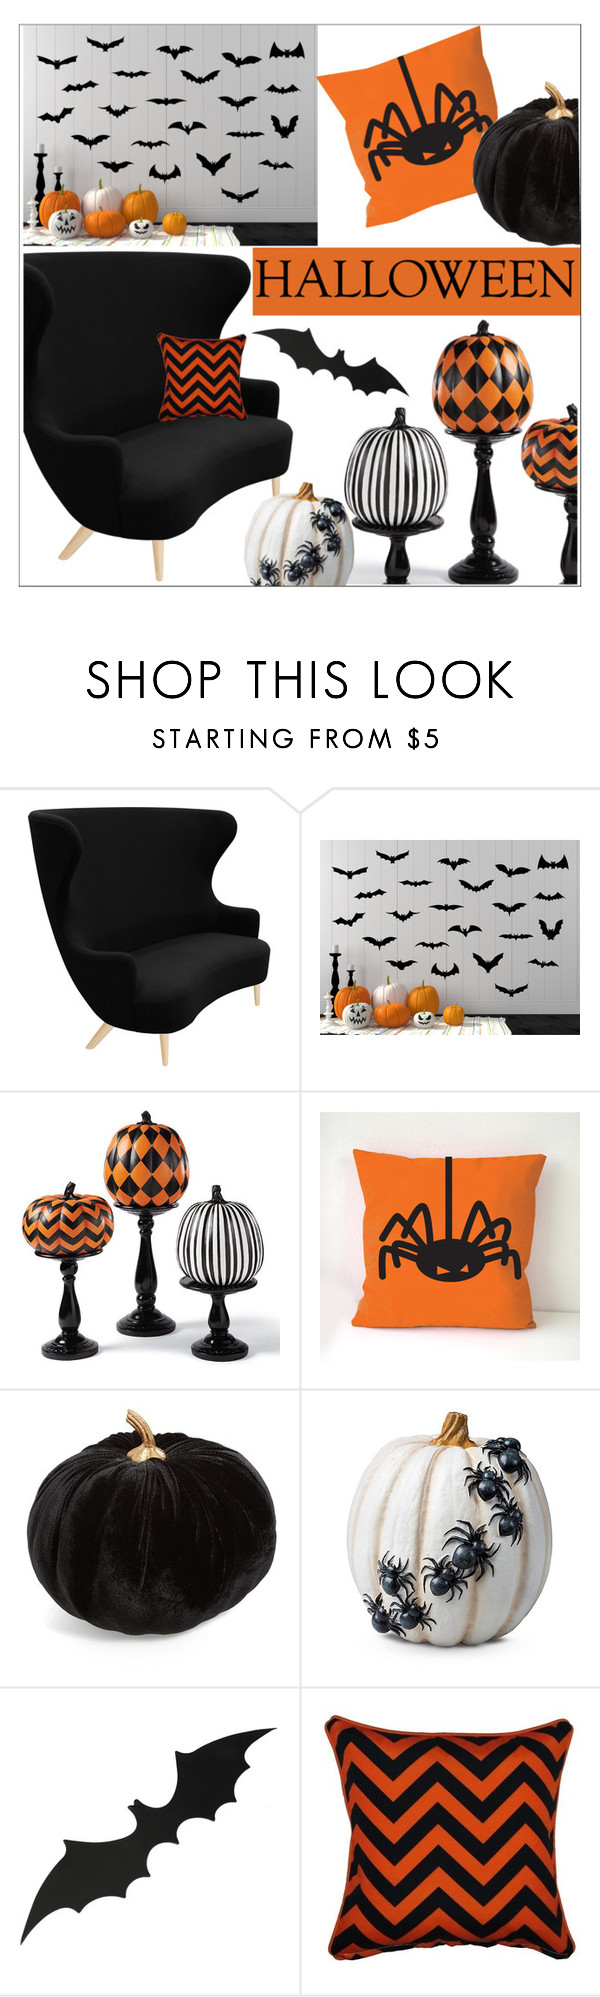 """Halloween Decor"" by sebi86 ❤ liked on Polyvore featuring interior, interiors, interior design, home, home decor, interior decorating, Tom Dixon, Grandin Road, Allstate Floral and Improvements"